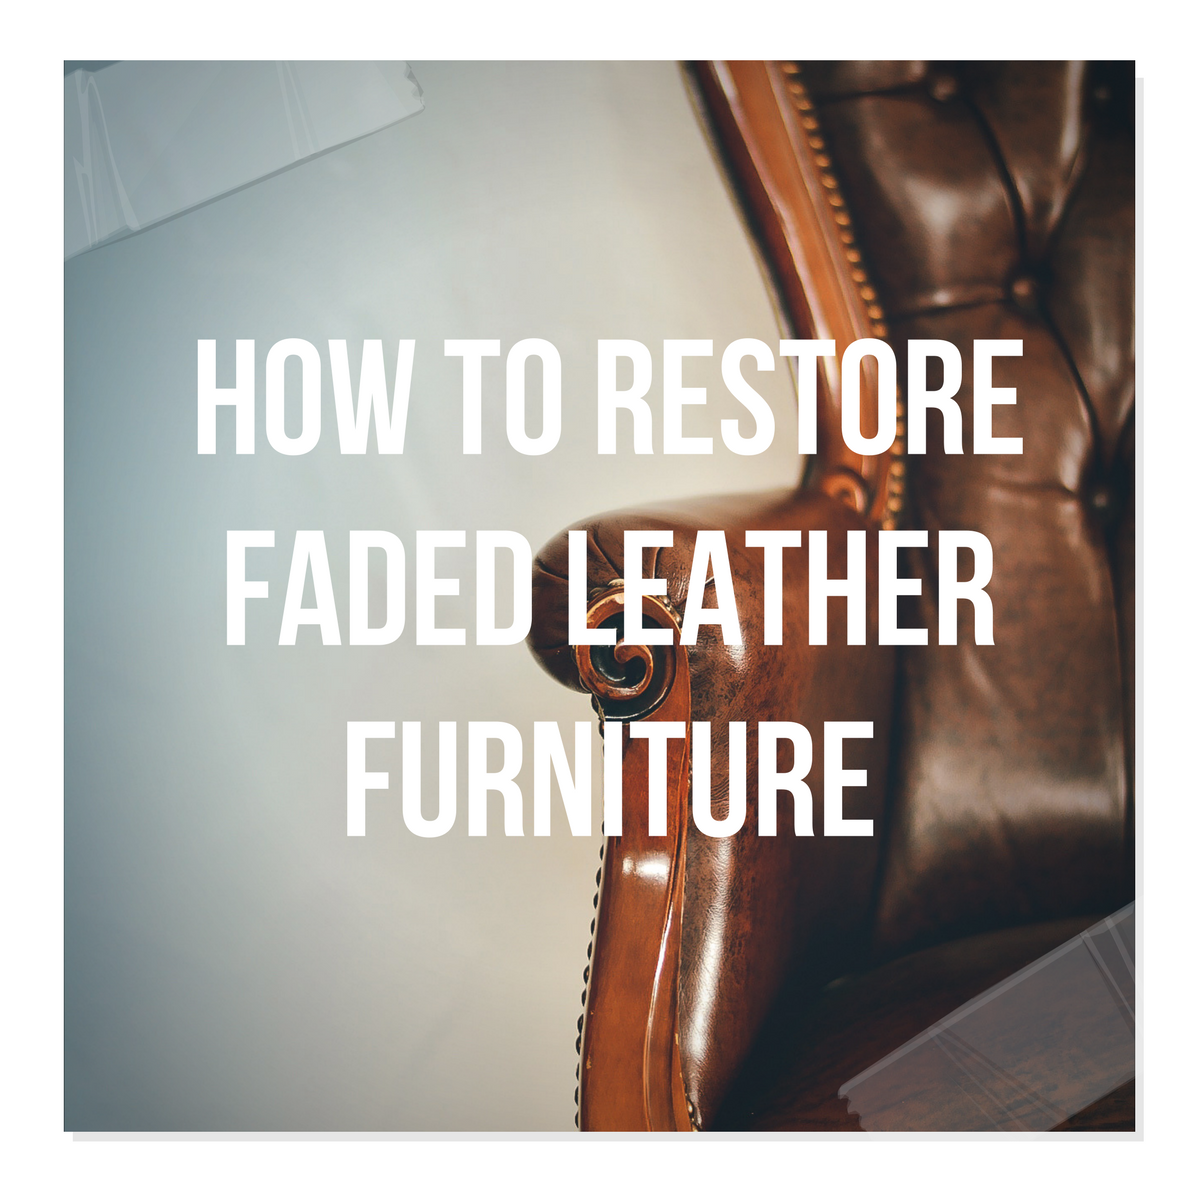 How To Restore Faded Leather Furniture – Kimberly Satorre's Russet Leather Couch Makeover